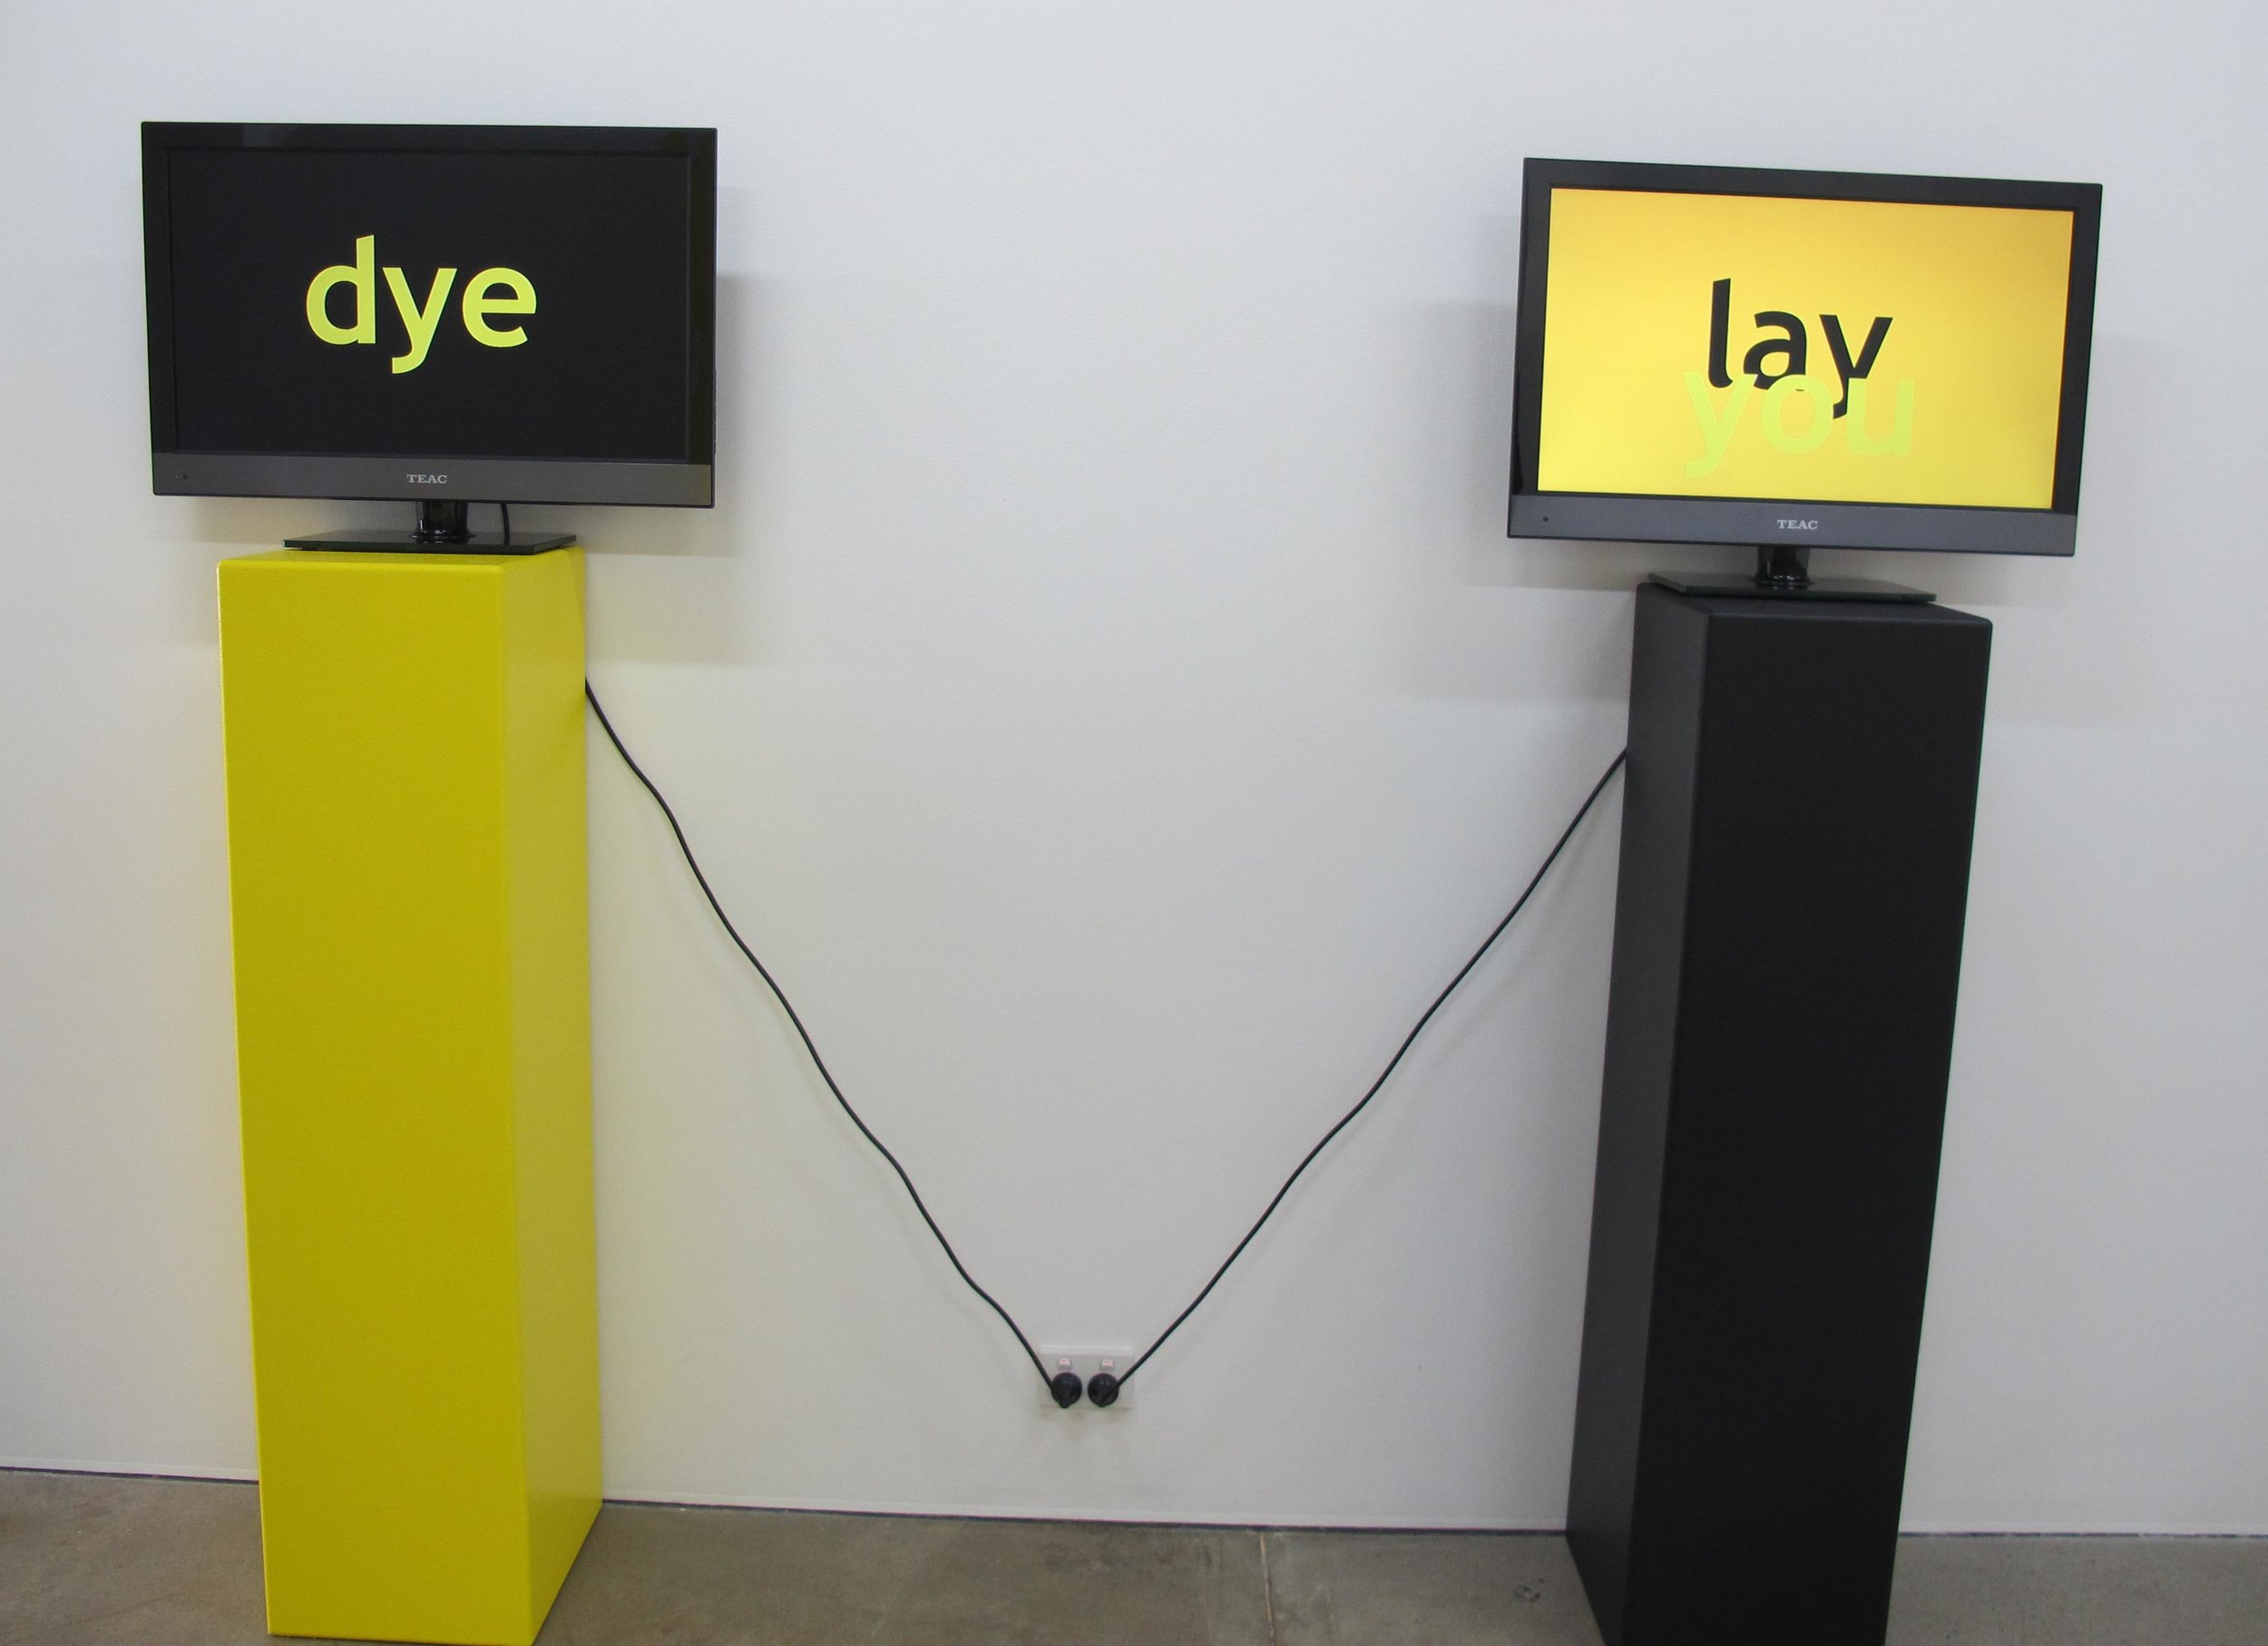 Michael Carolan,  try me and hey you,  2012, HD video and soundscape, installation view